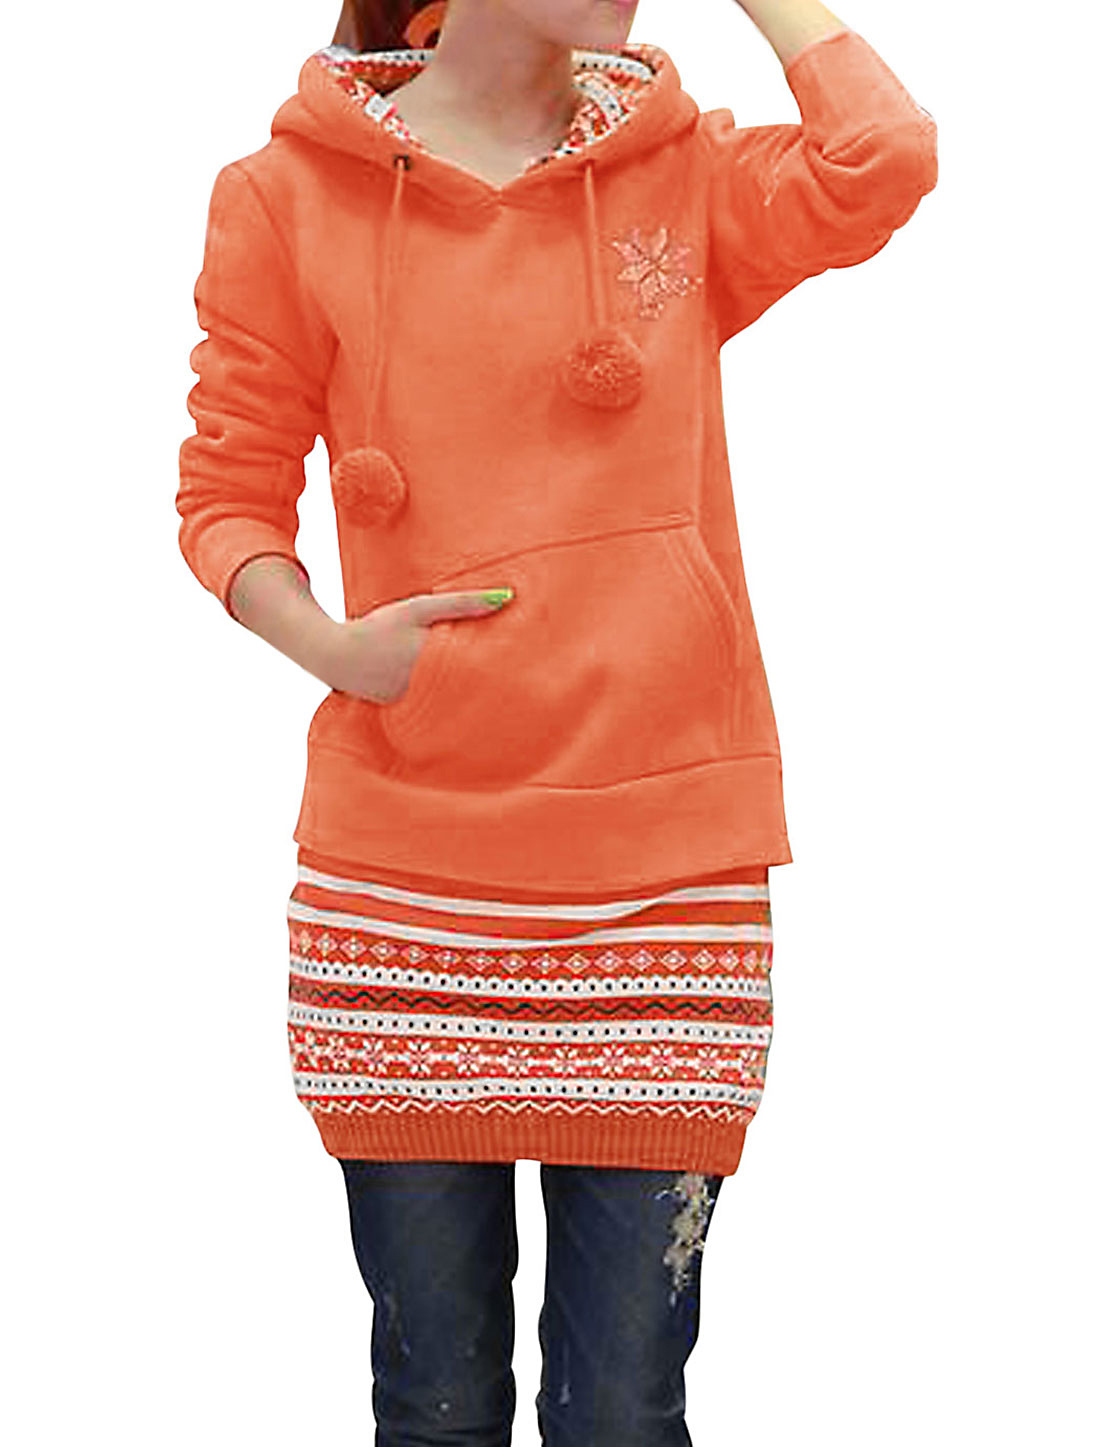 Lady Knitted Panel Design Hooded Pom-pom Tunic Sweatshirt Orange M